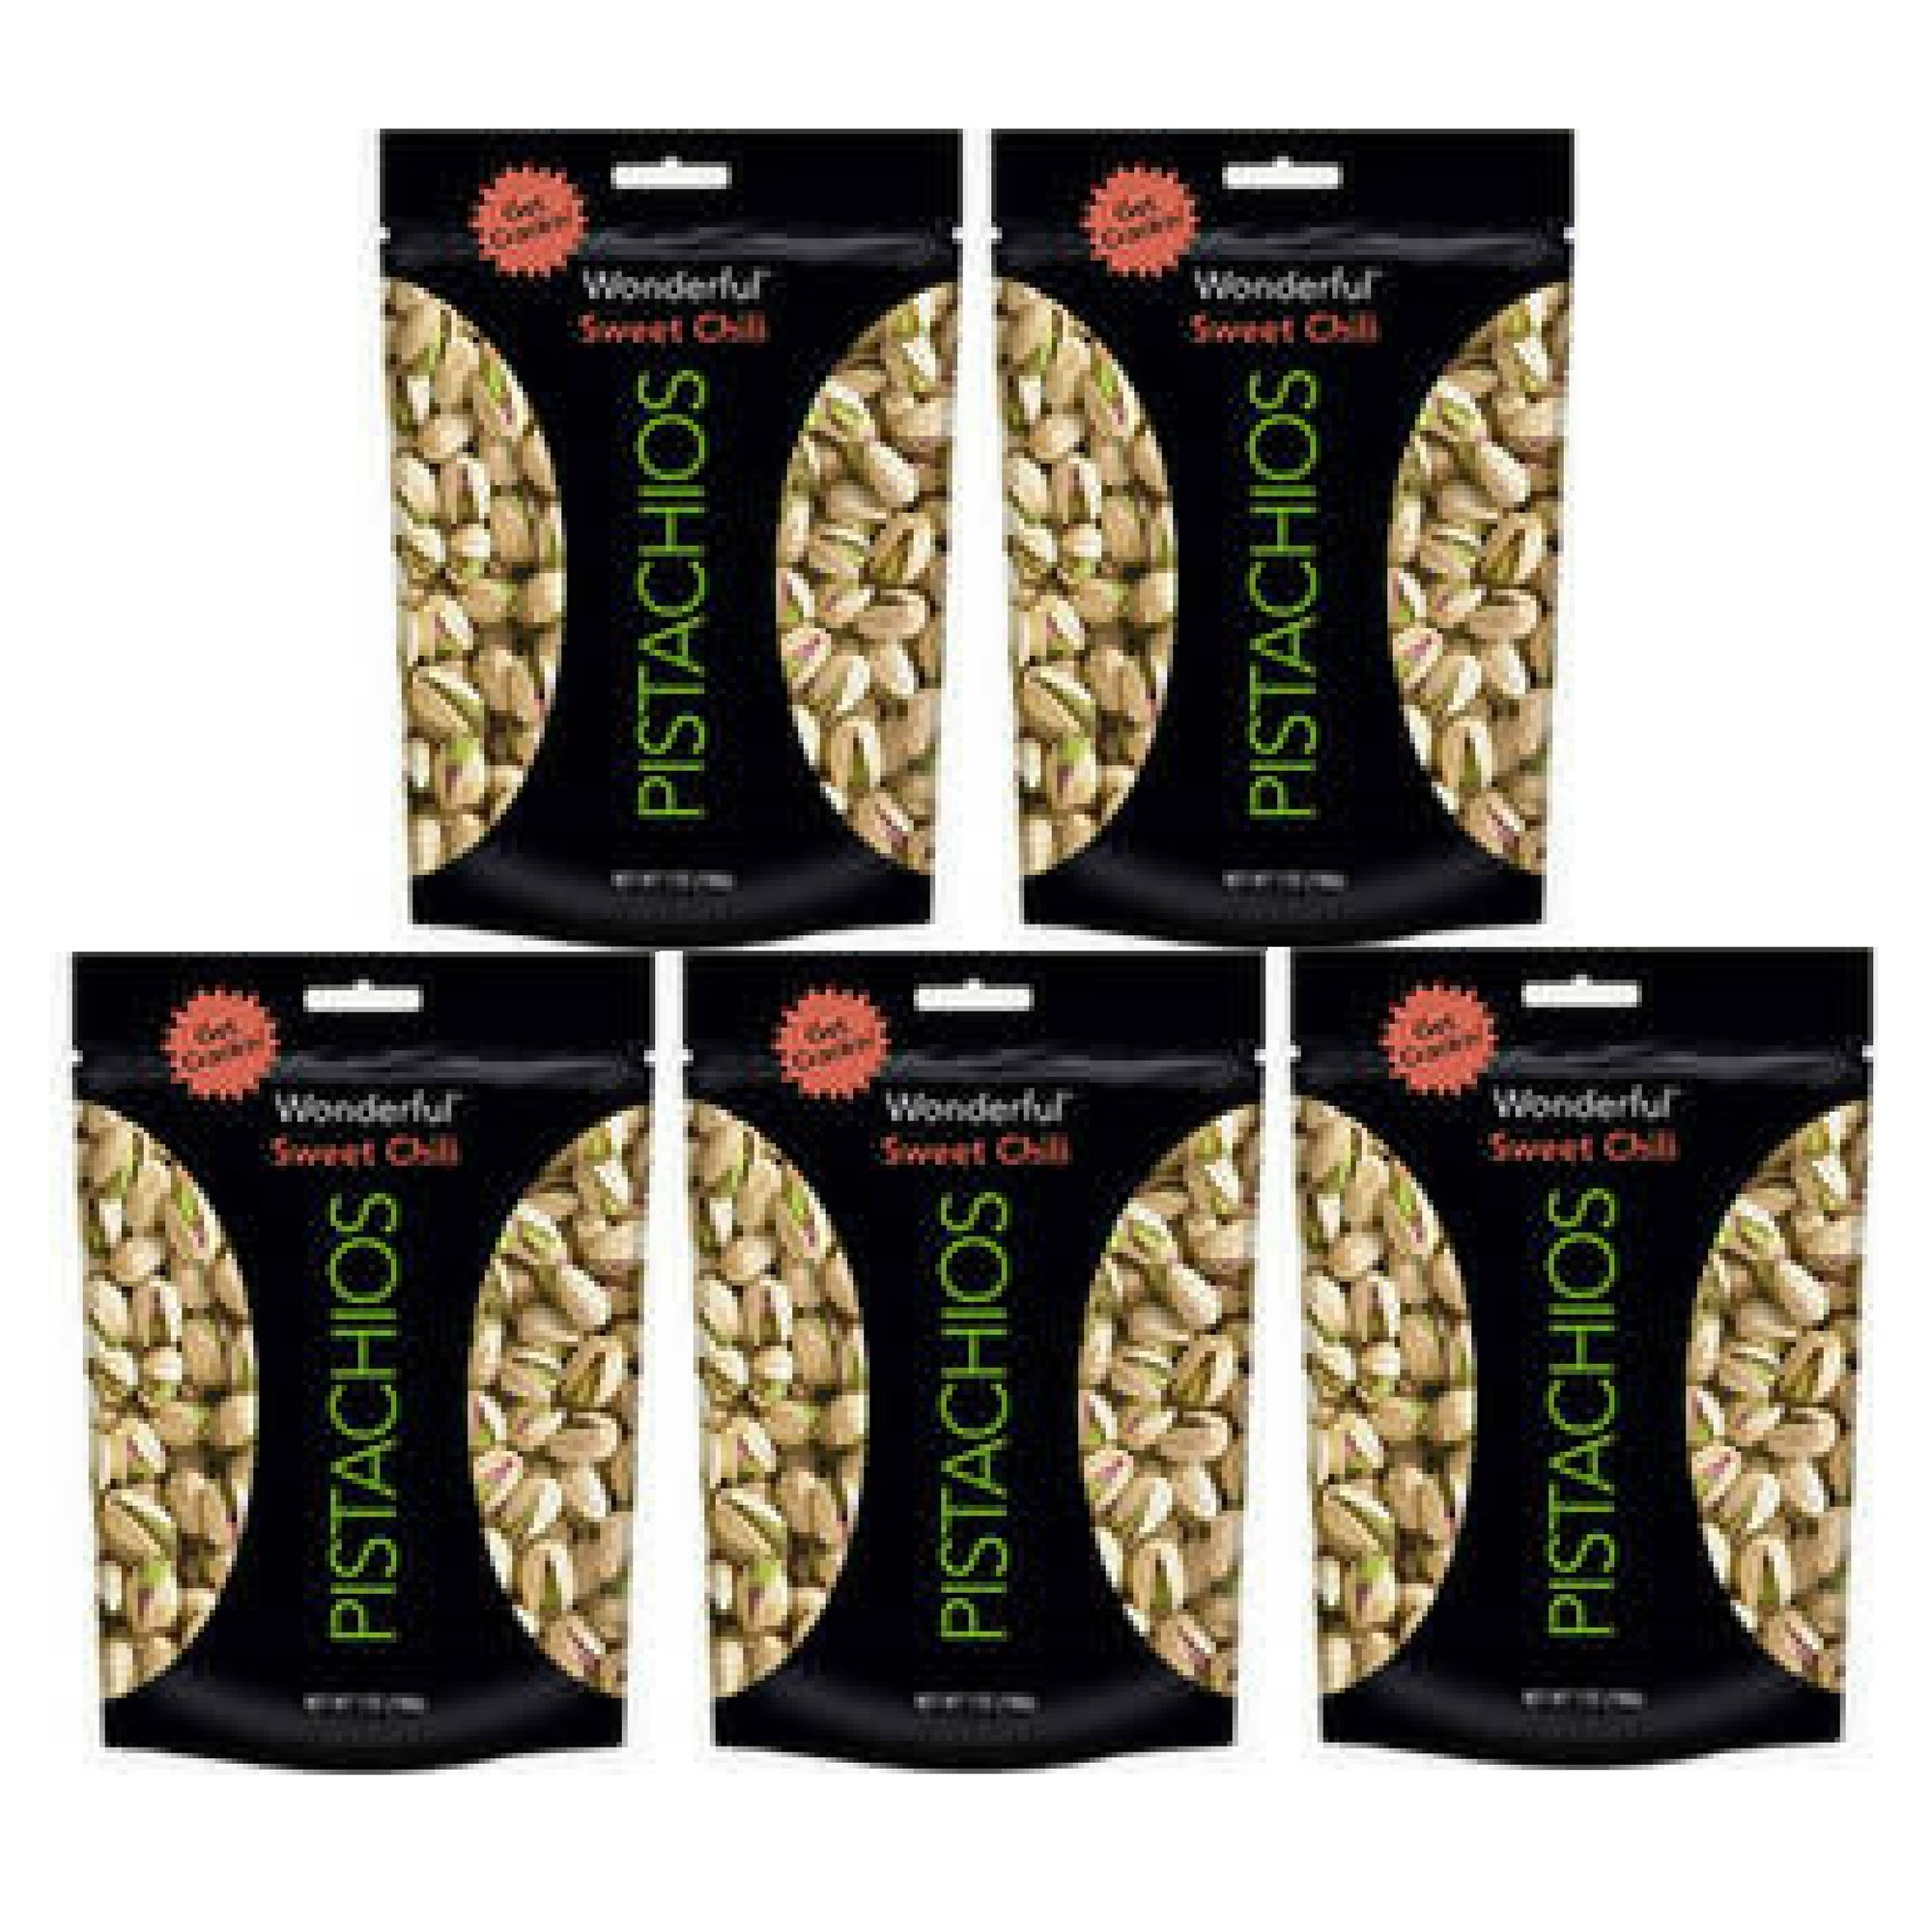 Wonderful Pistachios Sweet Chili, 7.0 OZ - 5 count